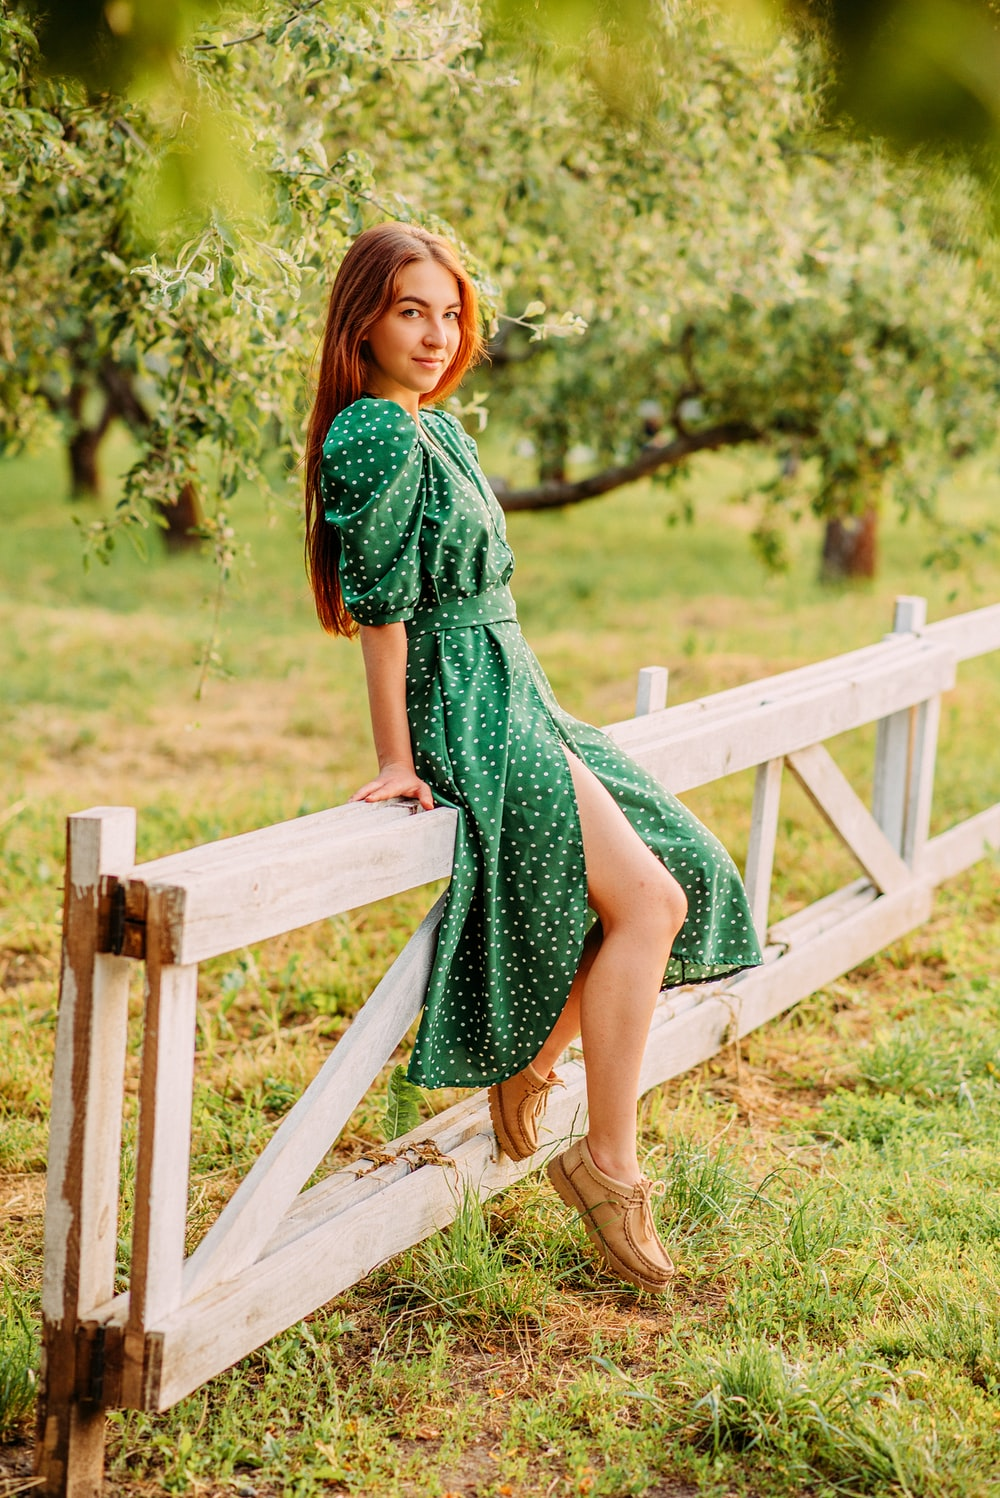 woman in green dress standing on brown wooden bridge during daytime